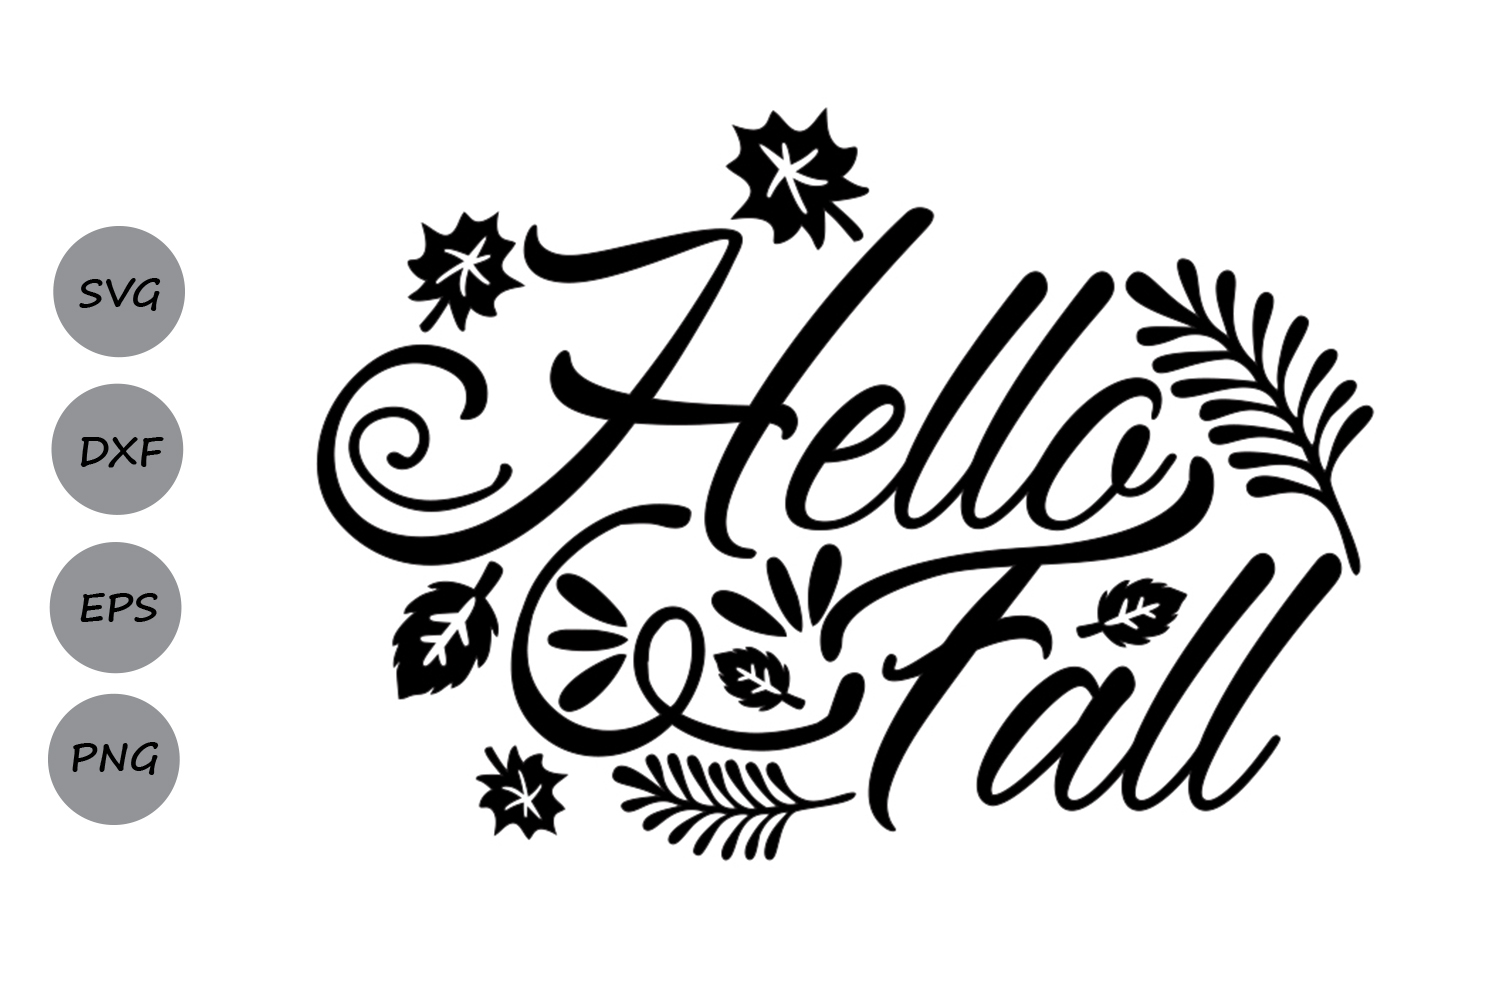 Download Free 492407 Graficos for Cricut Explore, Silhouette and other cutting machines.